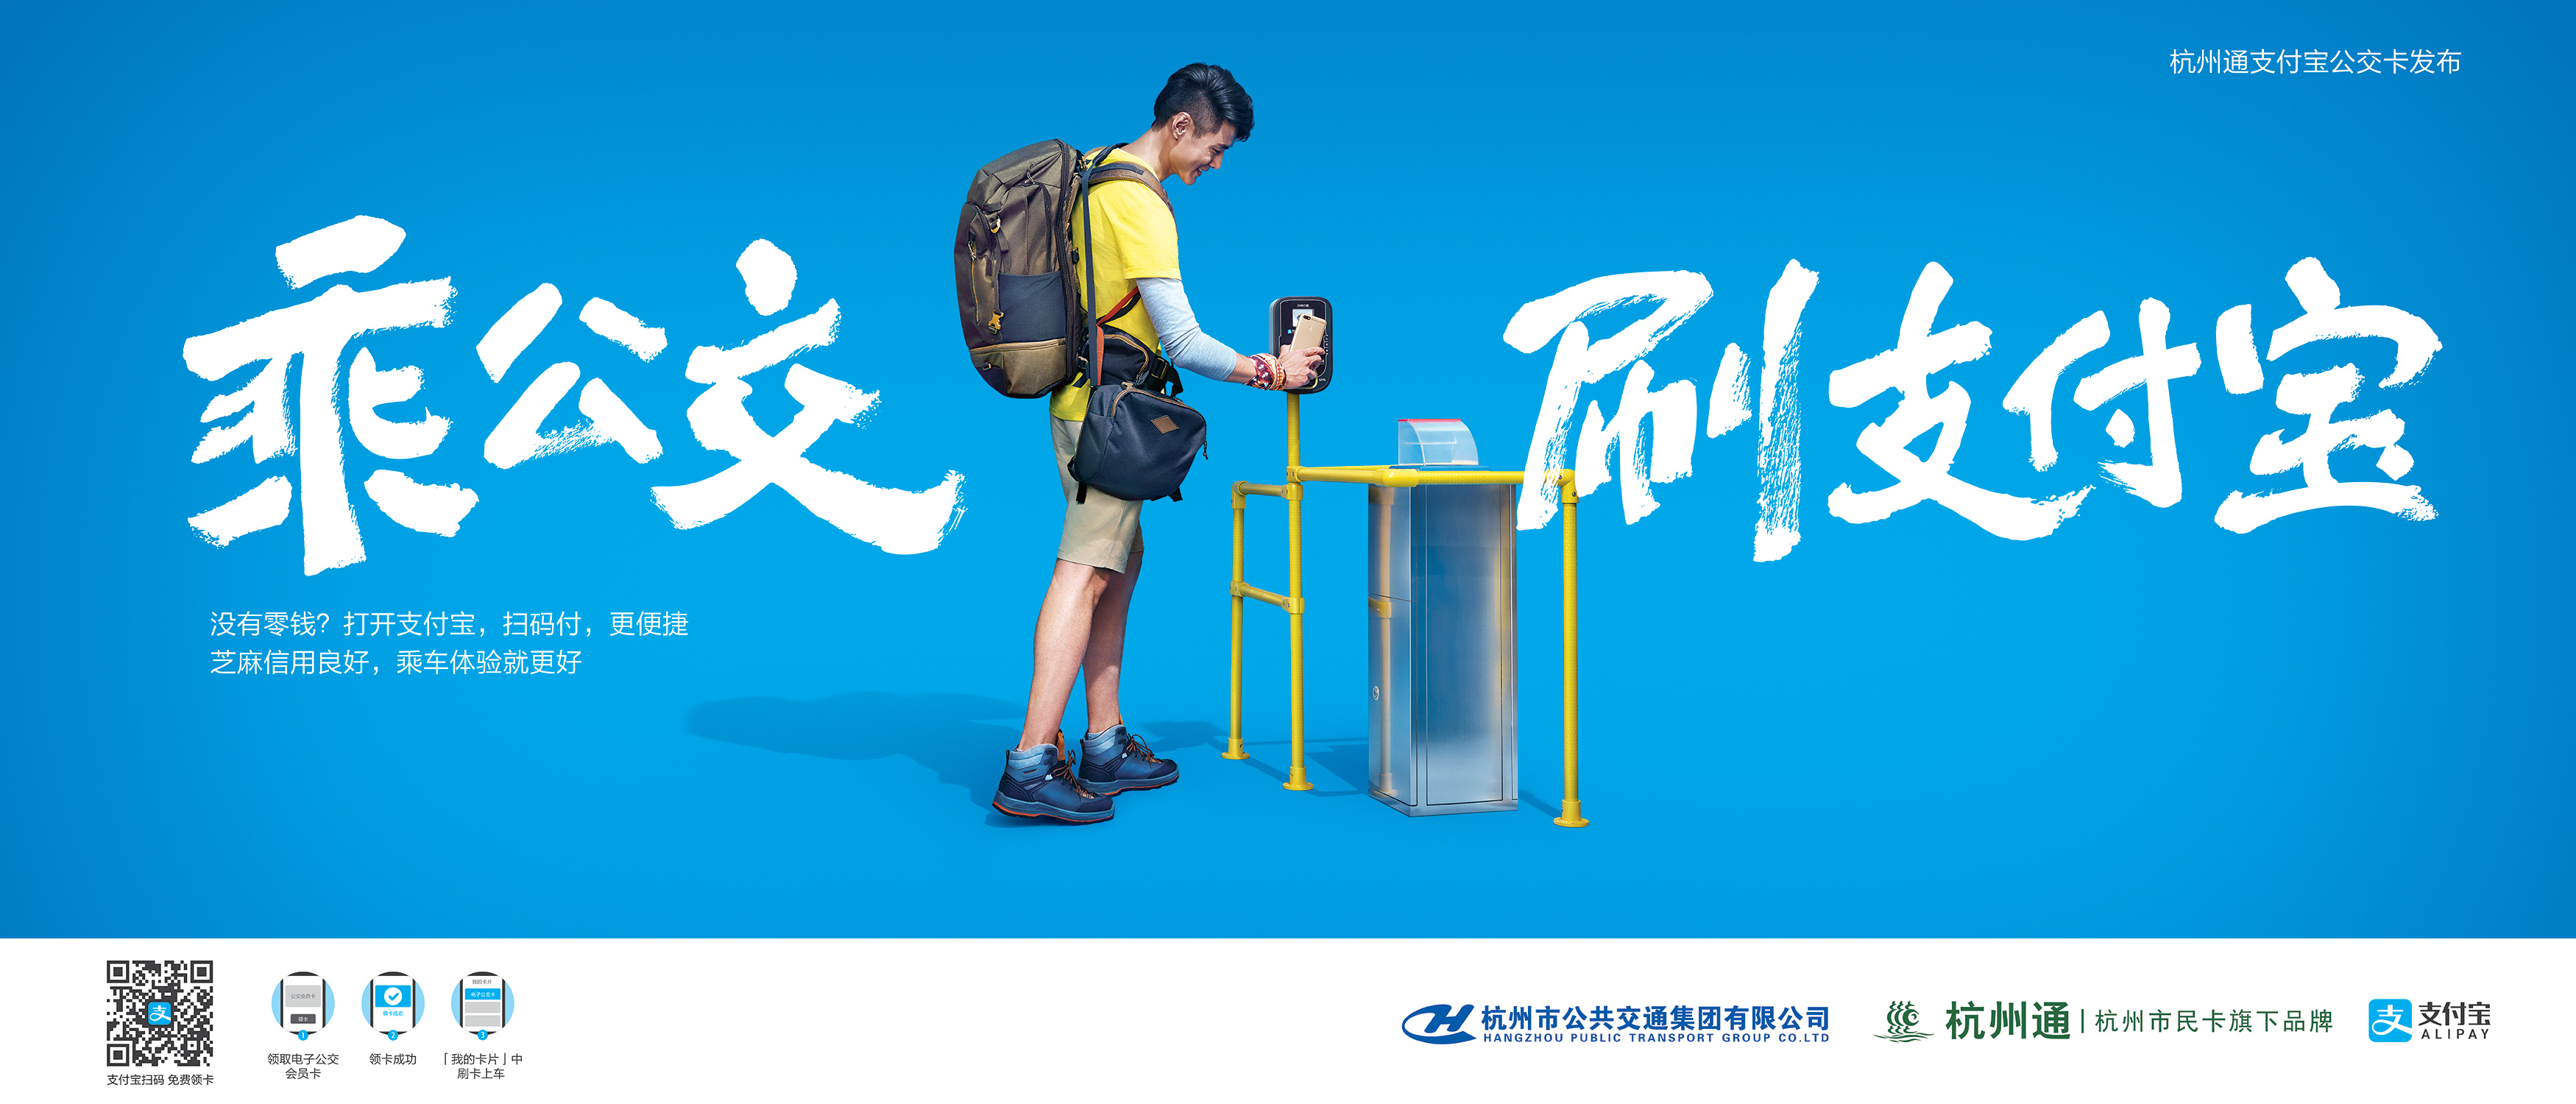 Alipay_Hangzhou Bus_Backpacker